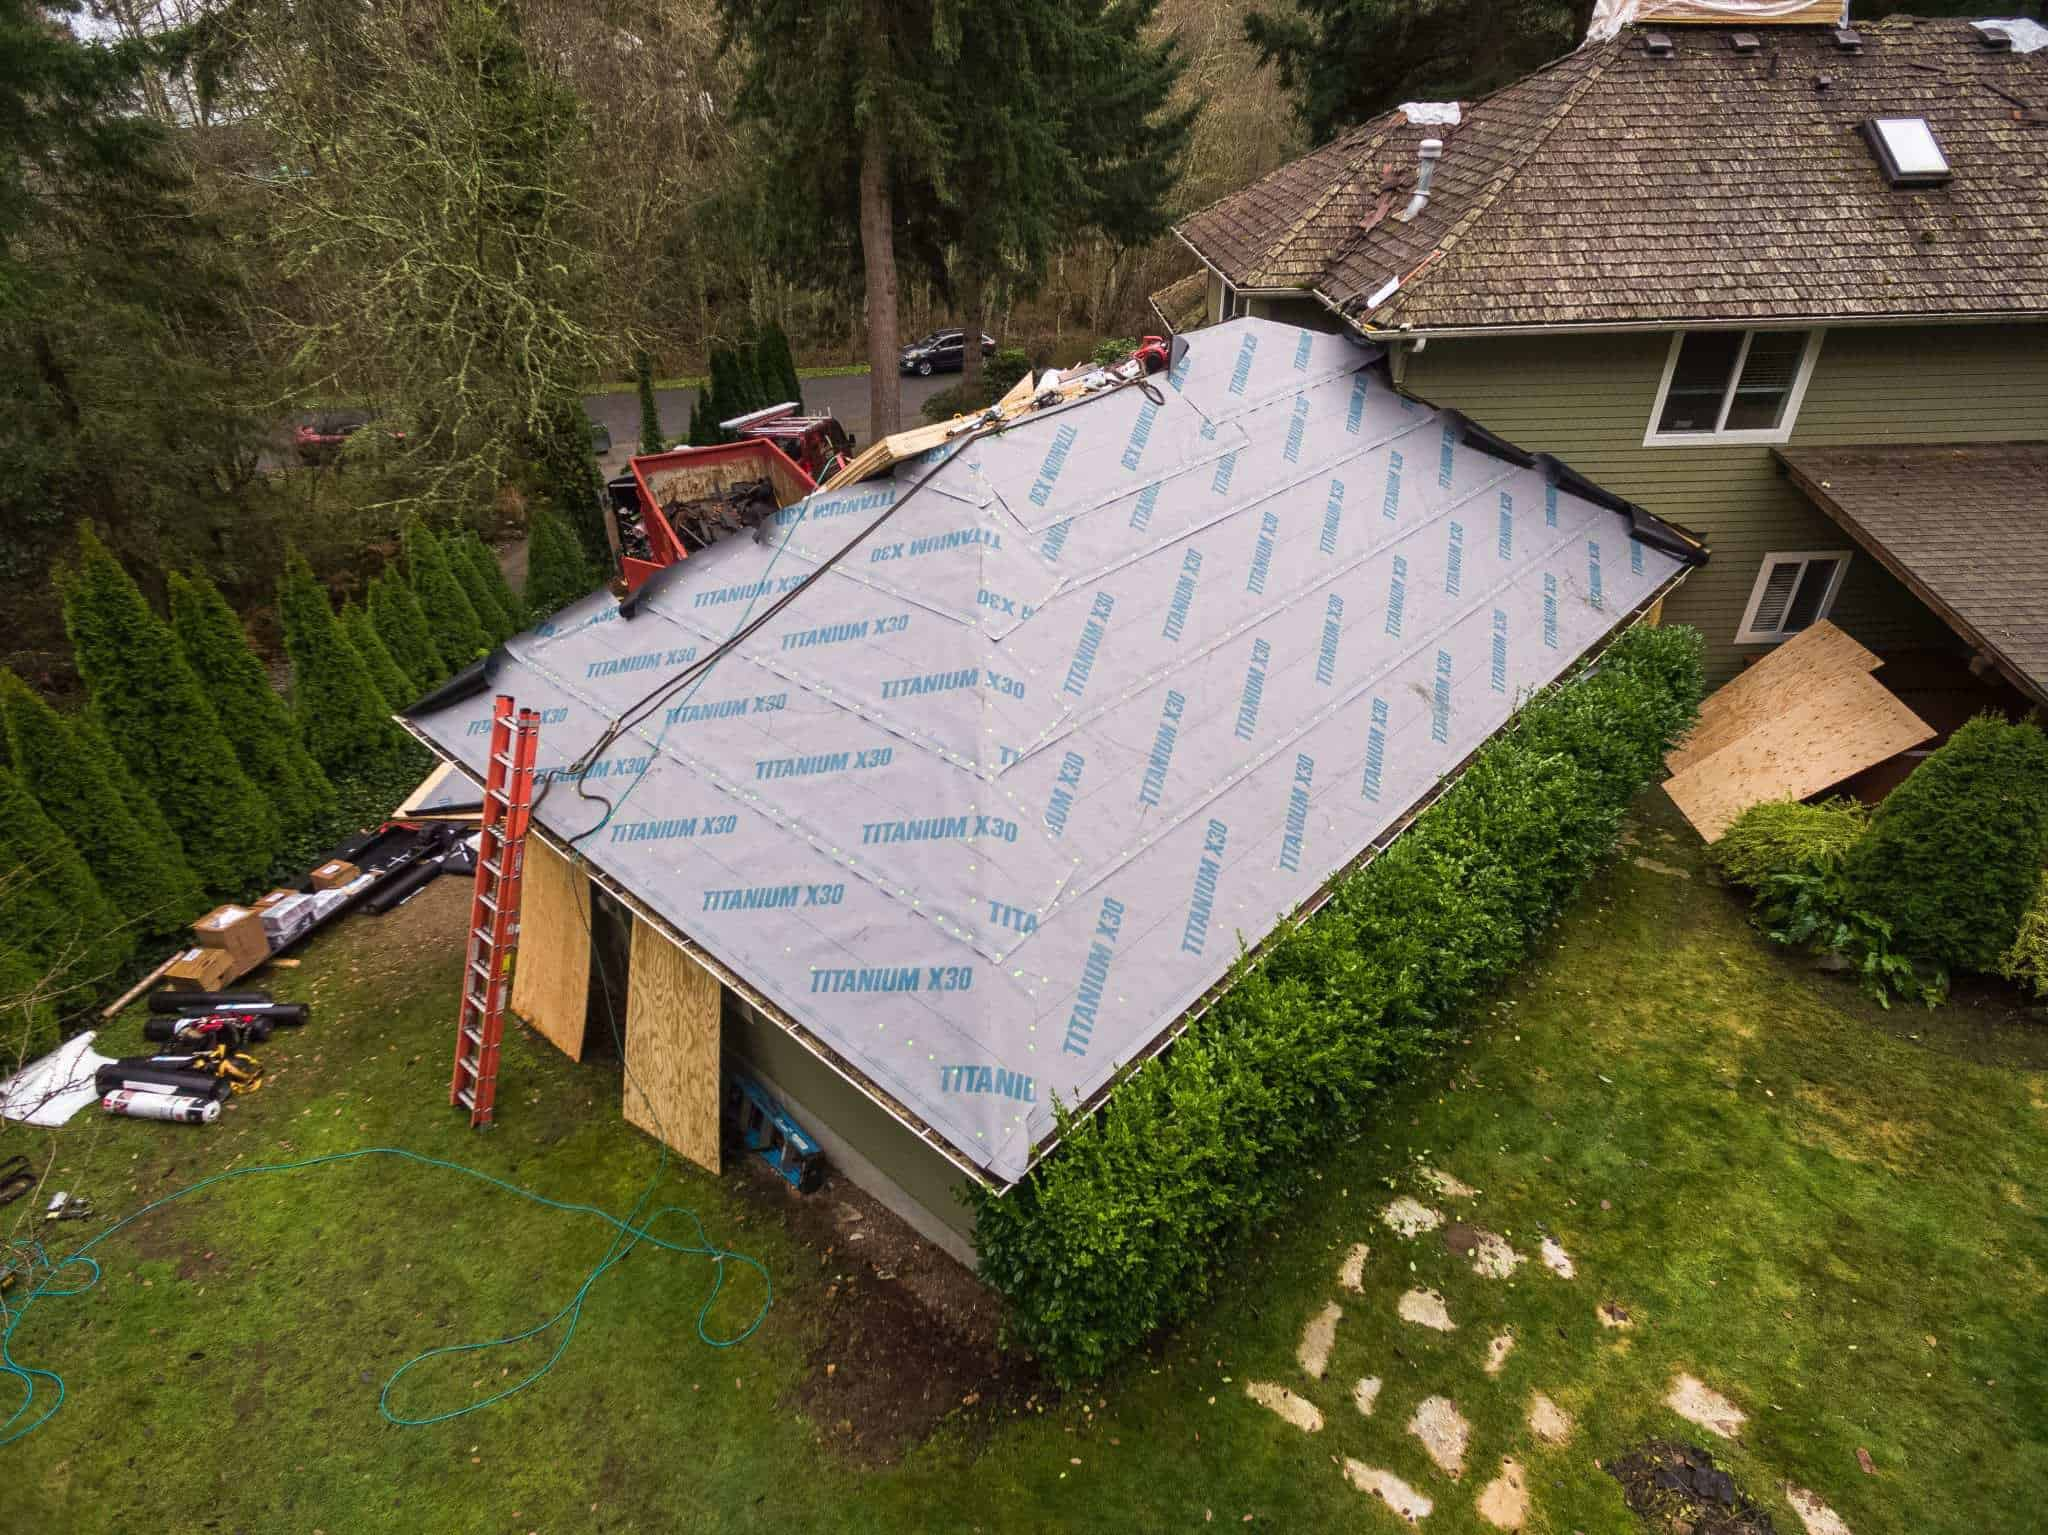 Titanium X30 underlayment Valentine Roofing and Owens Corning Collaboration Seattle, Washington - Local Residential Roofing Contractor